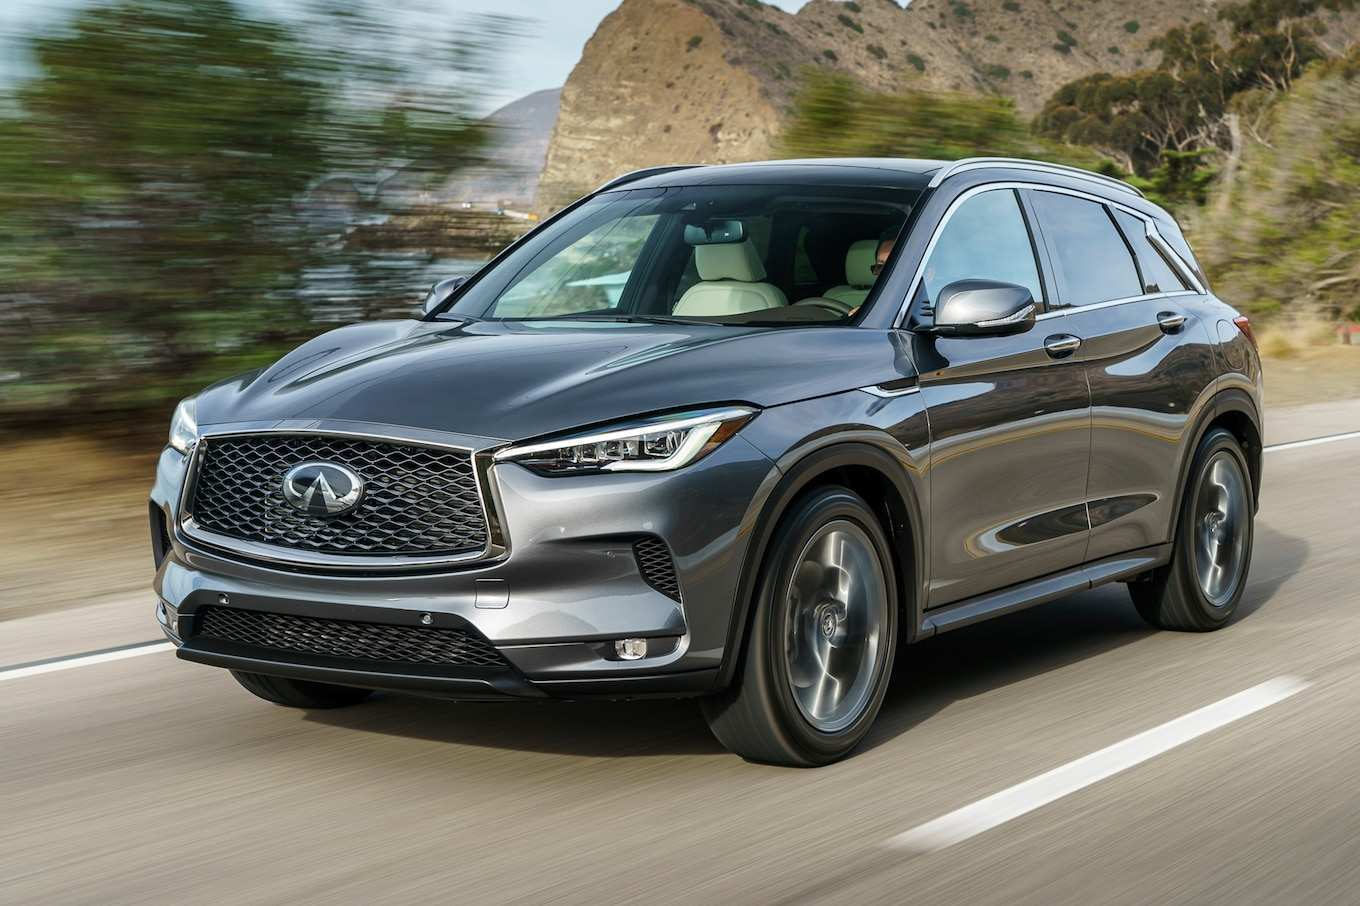 84 The Best 2019 Infiniti Gx50 Concept And Review